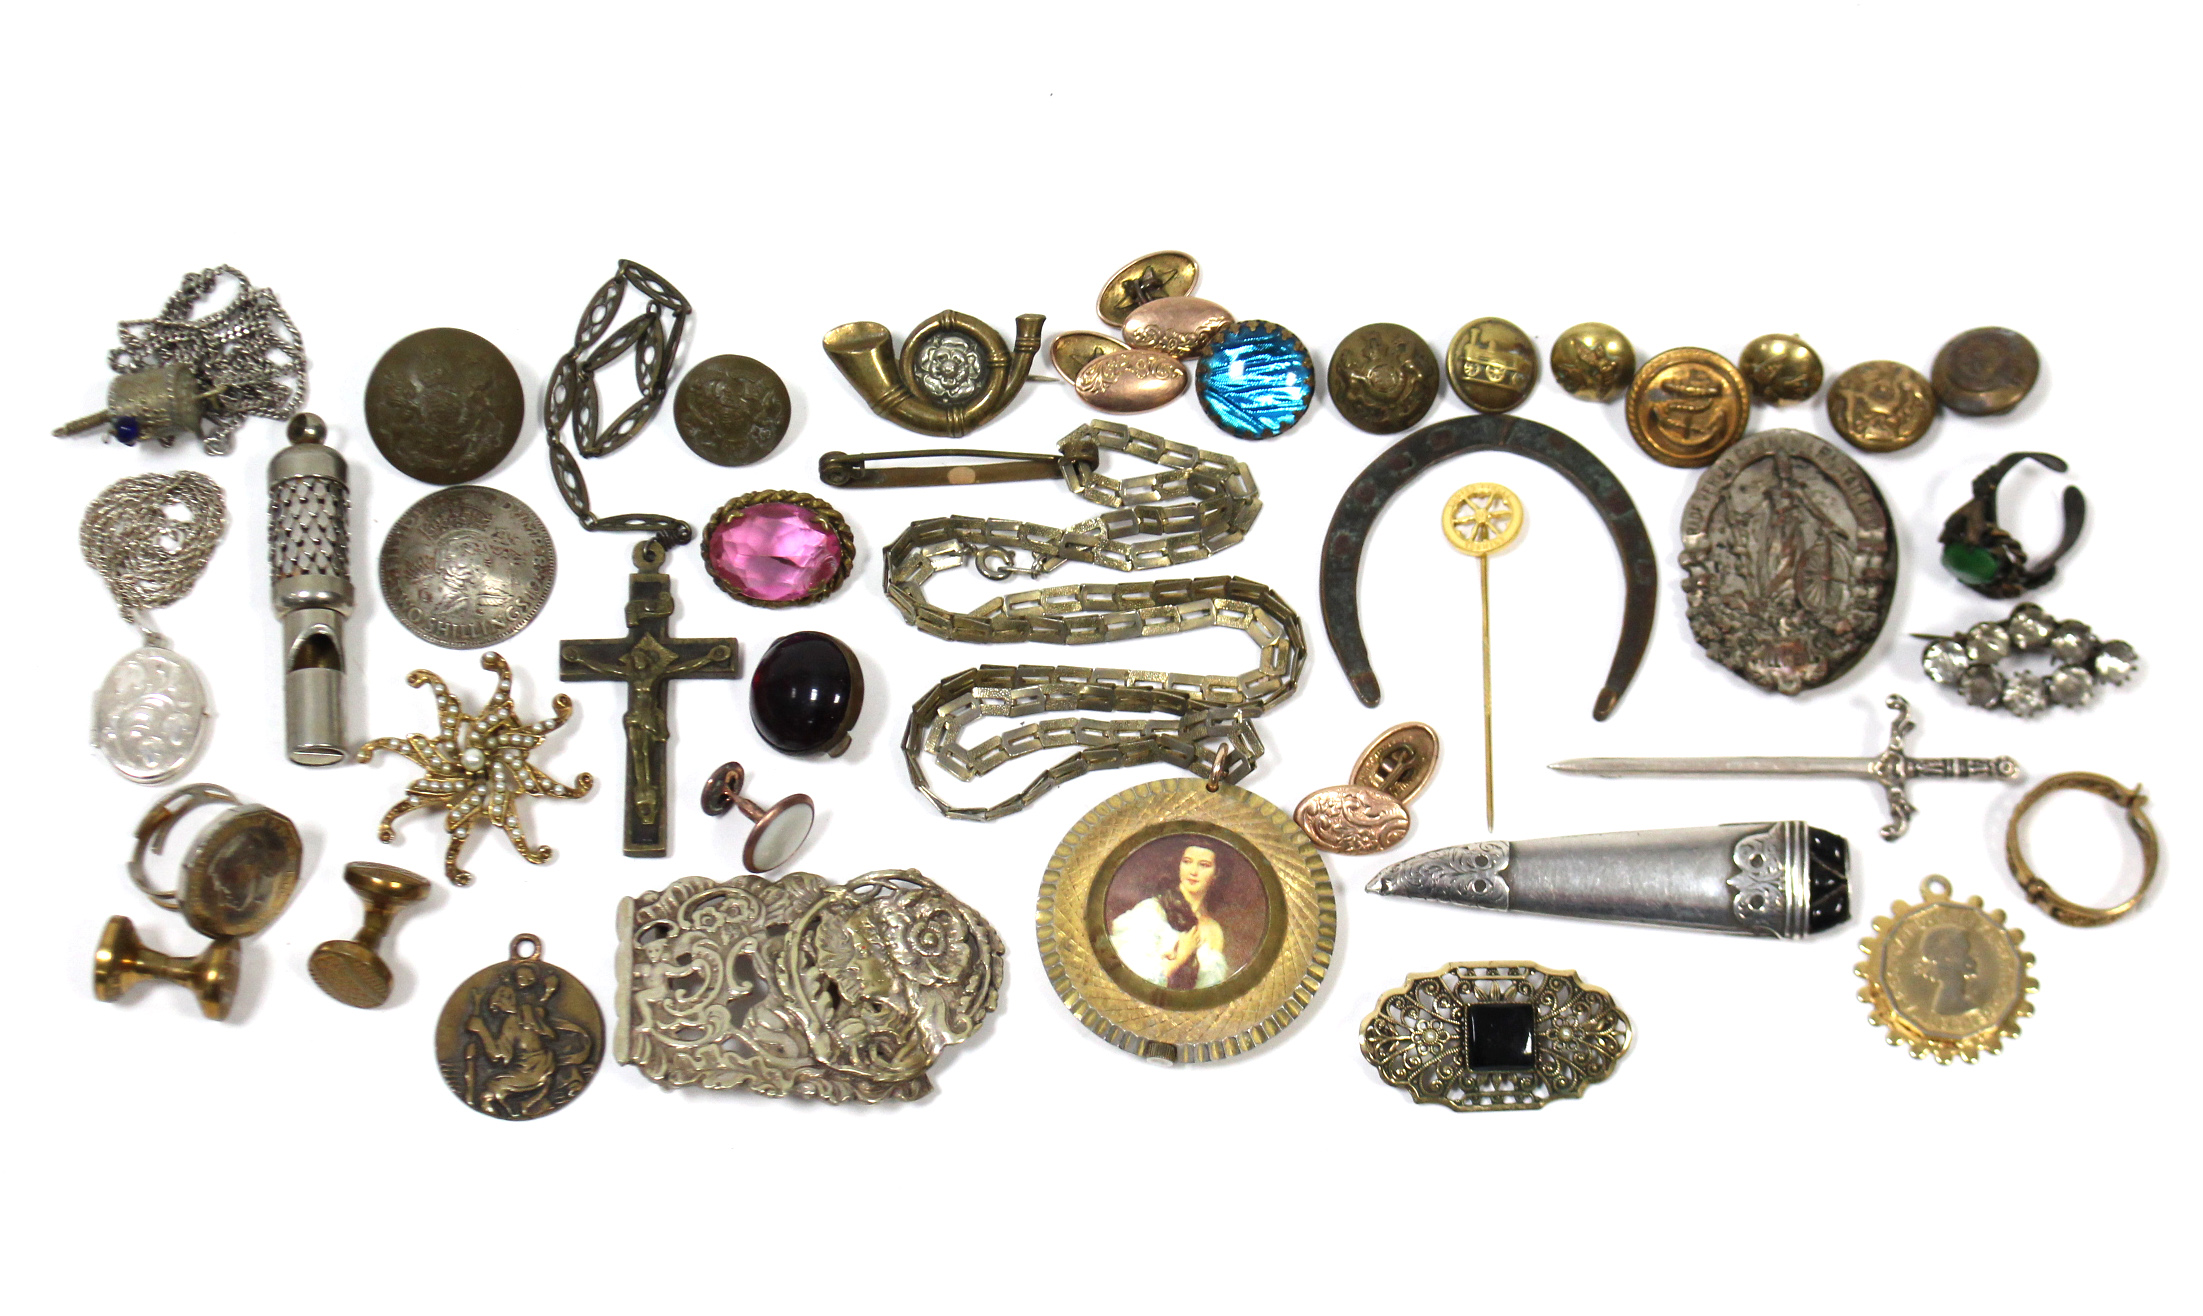 Lot 2 - A silver novelty bar brooch in the form of a sword; a silver oval photograph locket on fine-link